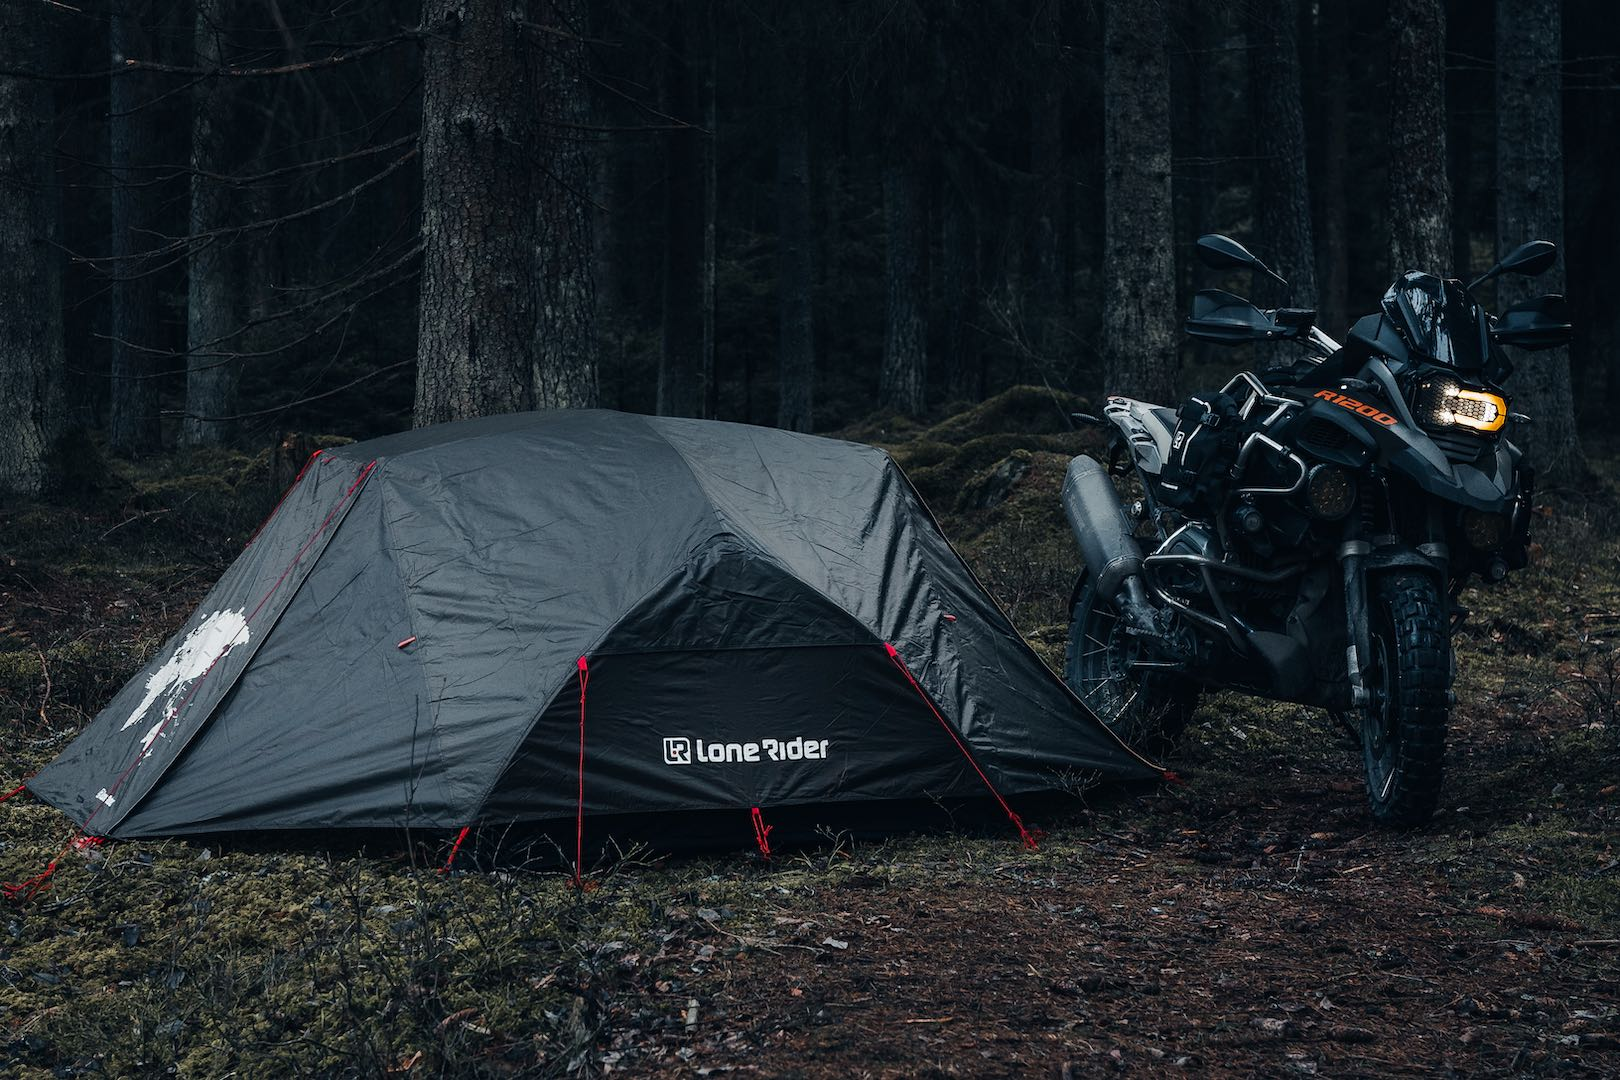 Top 5 Cold Weather Camping Tips for ADV Motorcyclists